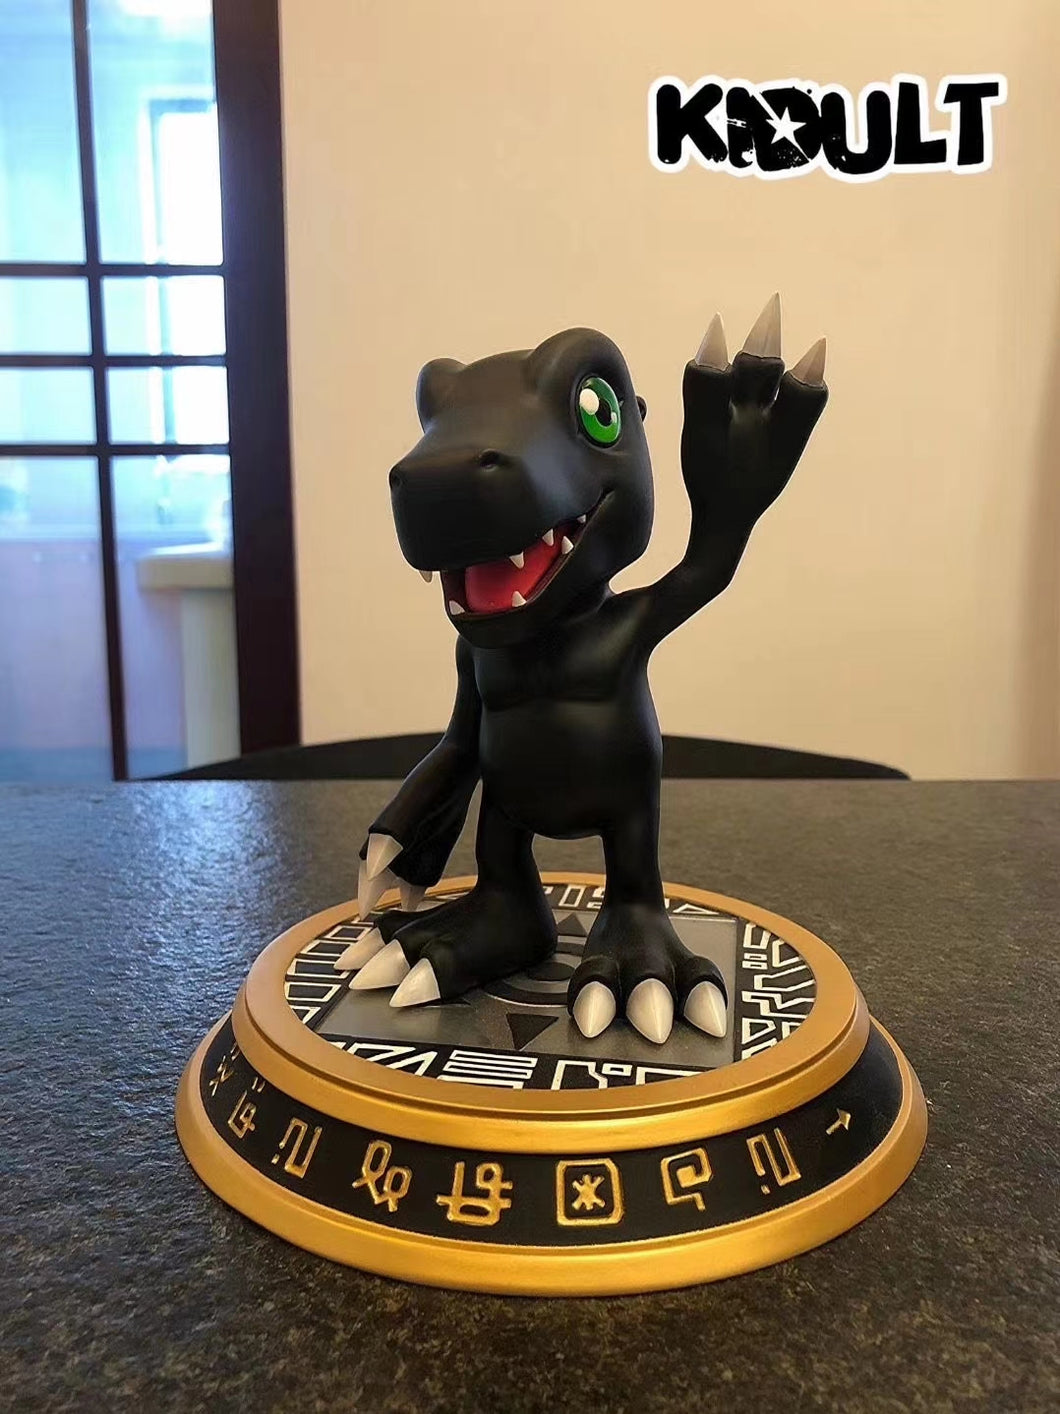 Black Version Agumon - Digimon Resin Statue - KIDULT Studios [Pre-Order]